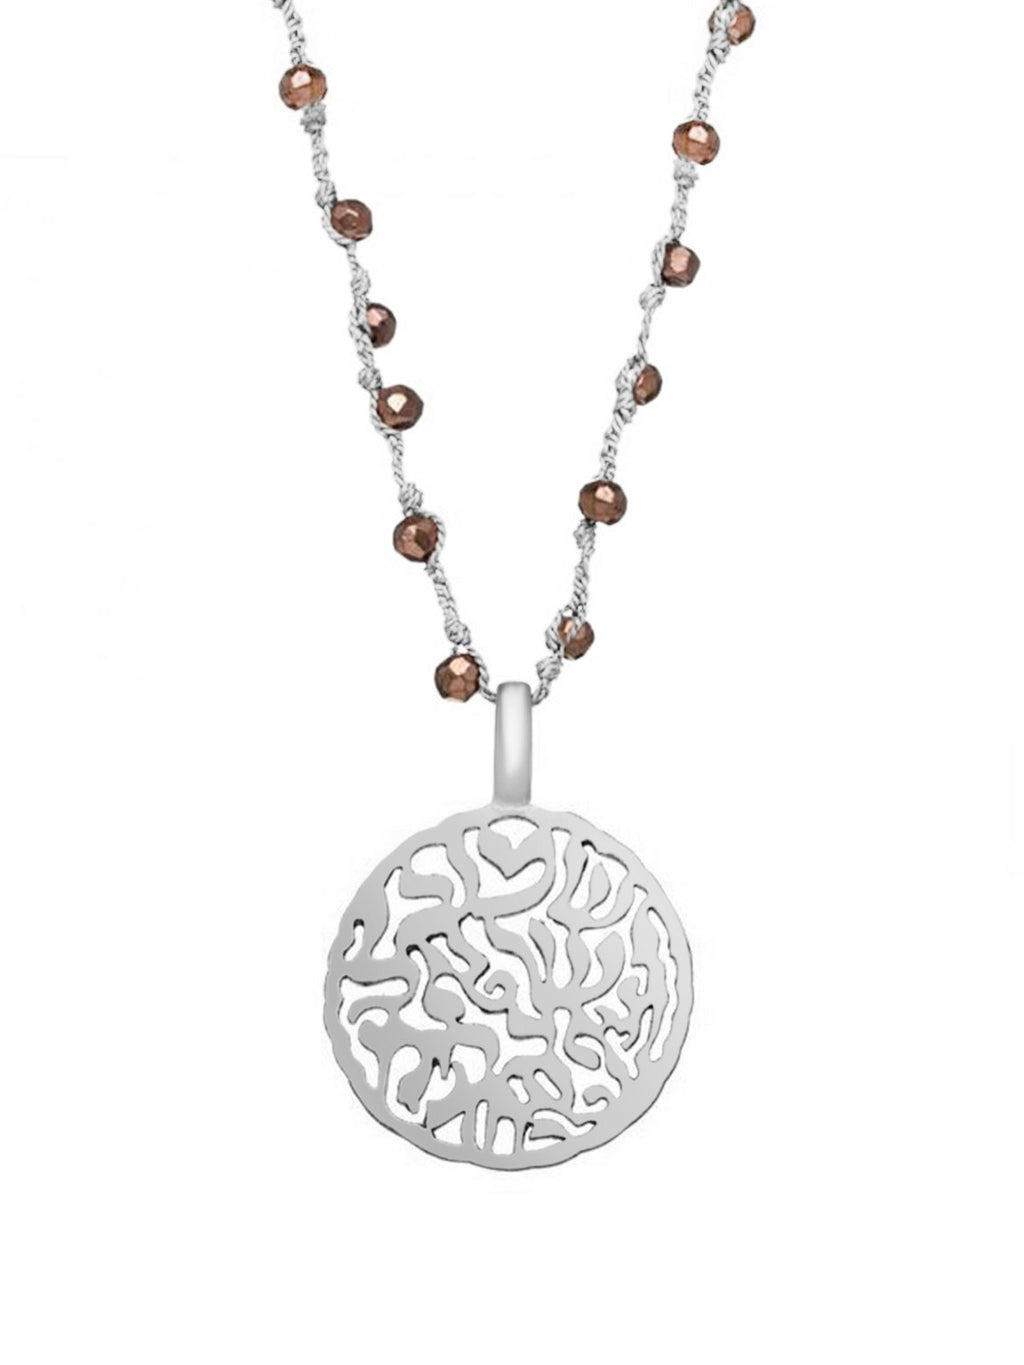 Bohemian Shema Prayer Necklace - Alef Bet Jewelry by Paula